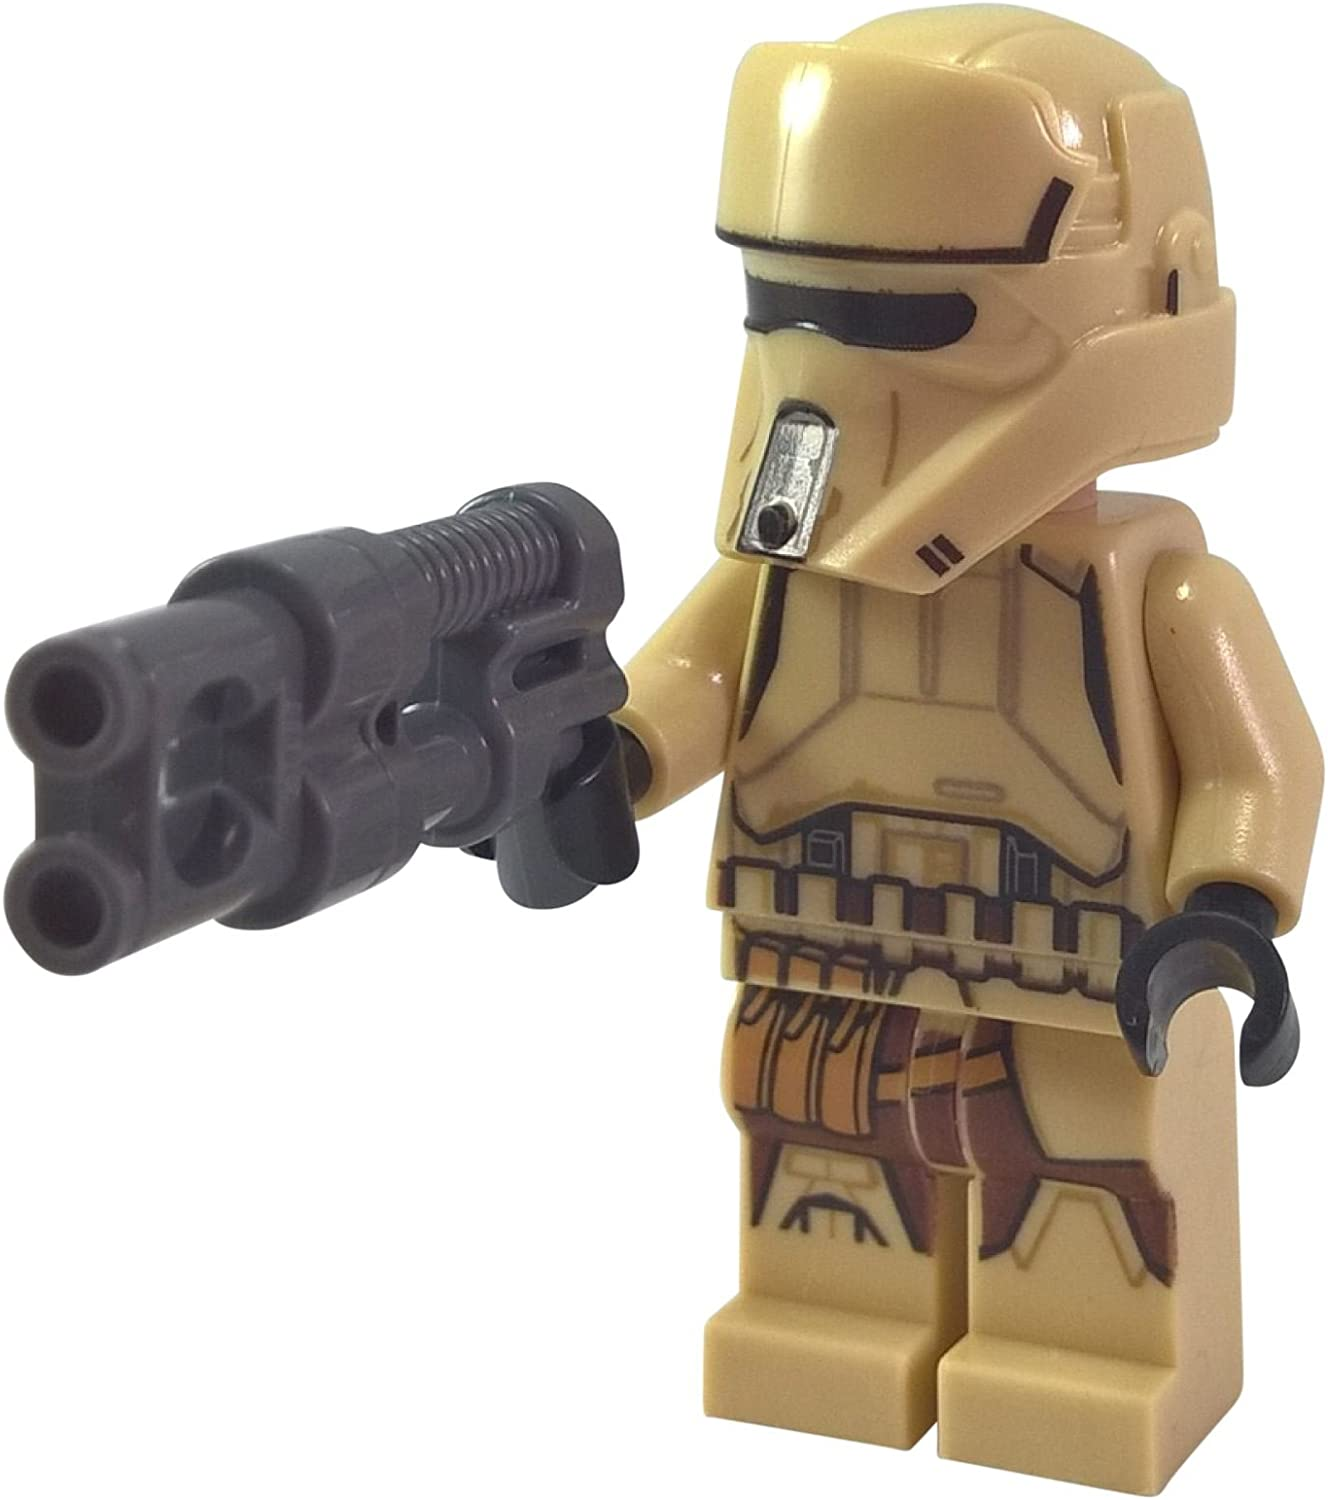 LEGO Star Wars: Rogue One - Scarif Stormtrooper Minifigure